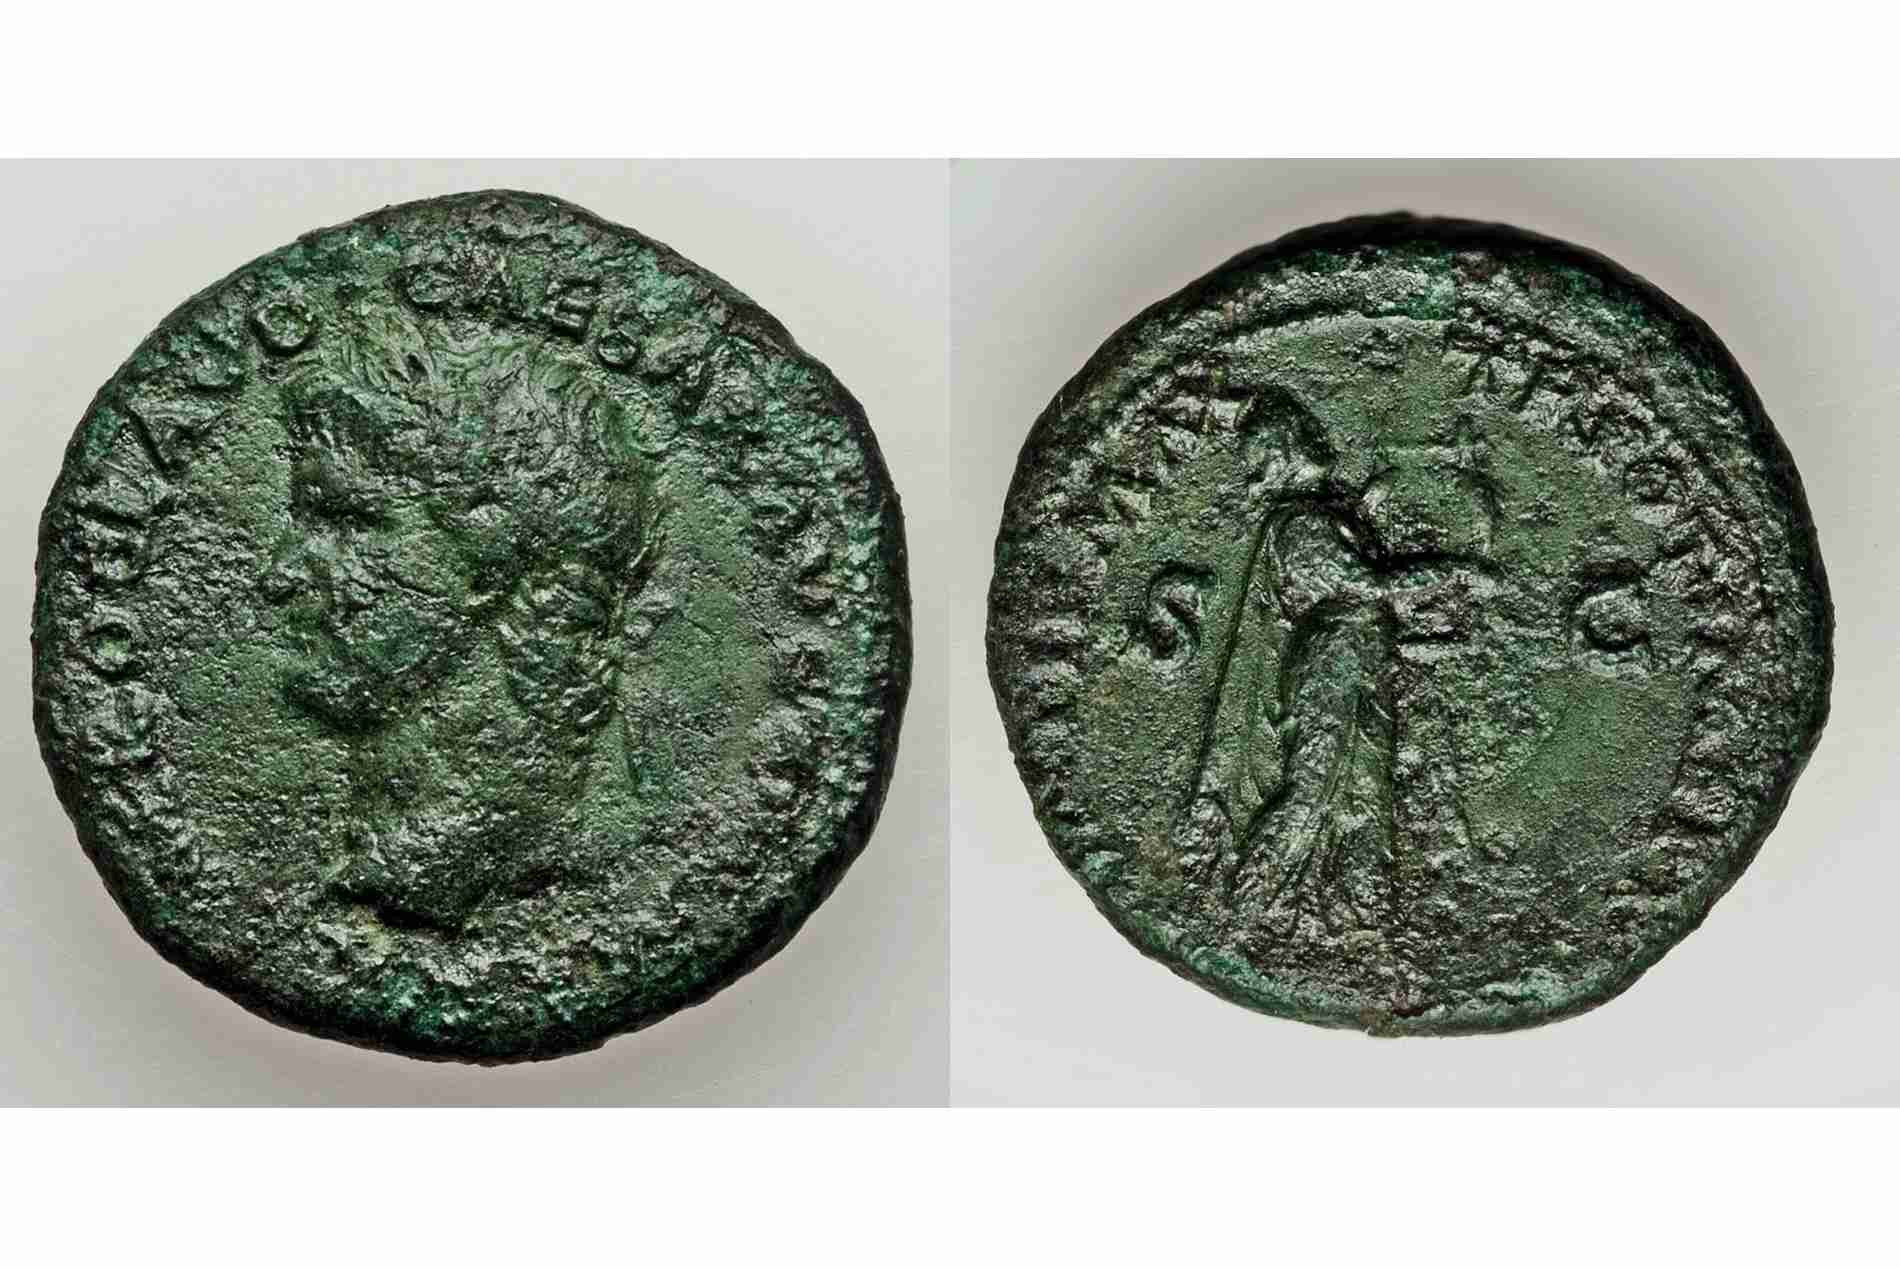 Ancient Copper Coin with Green Oxidation